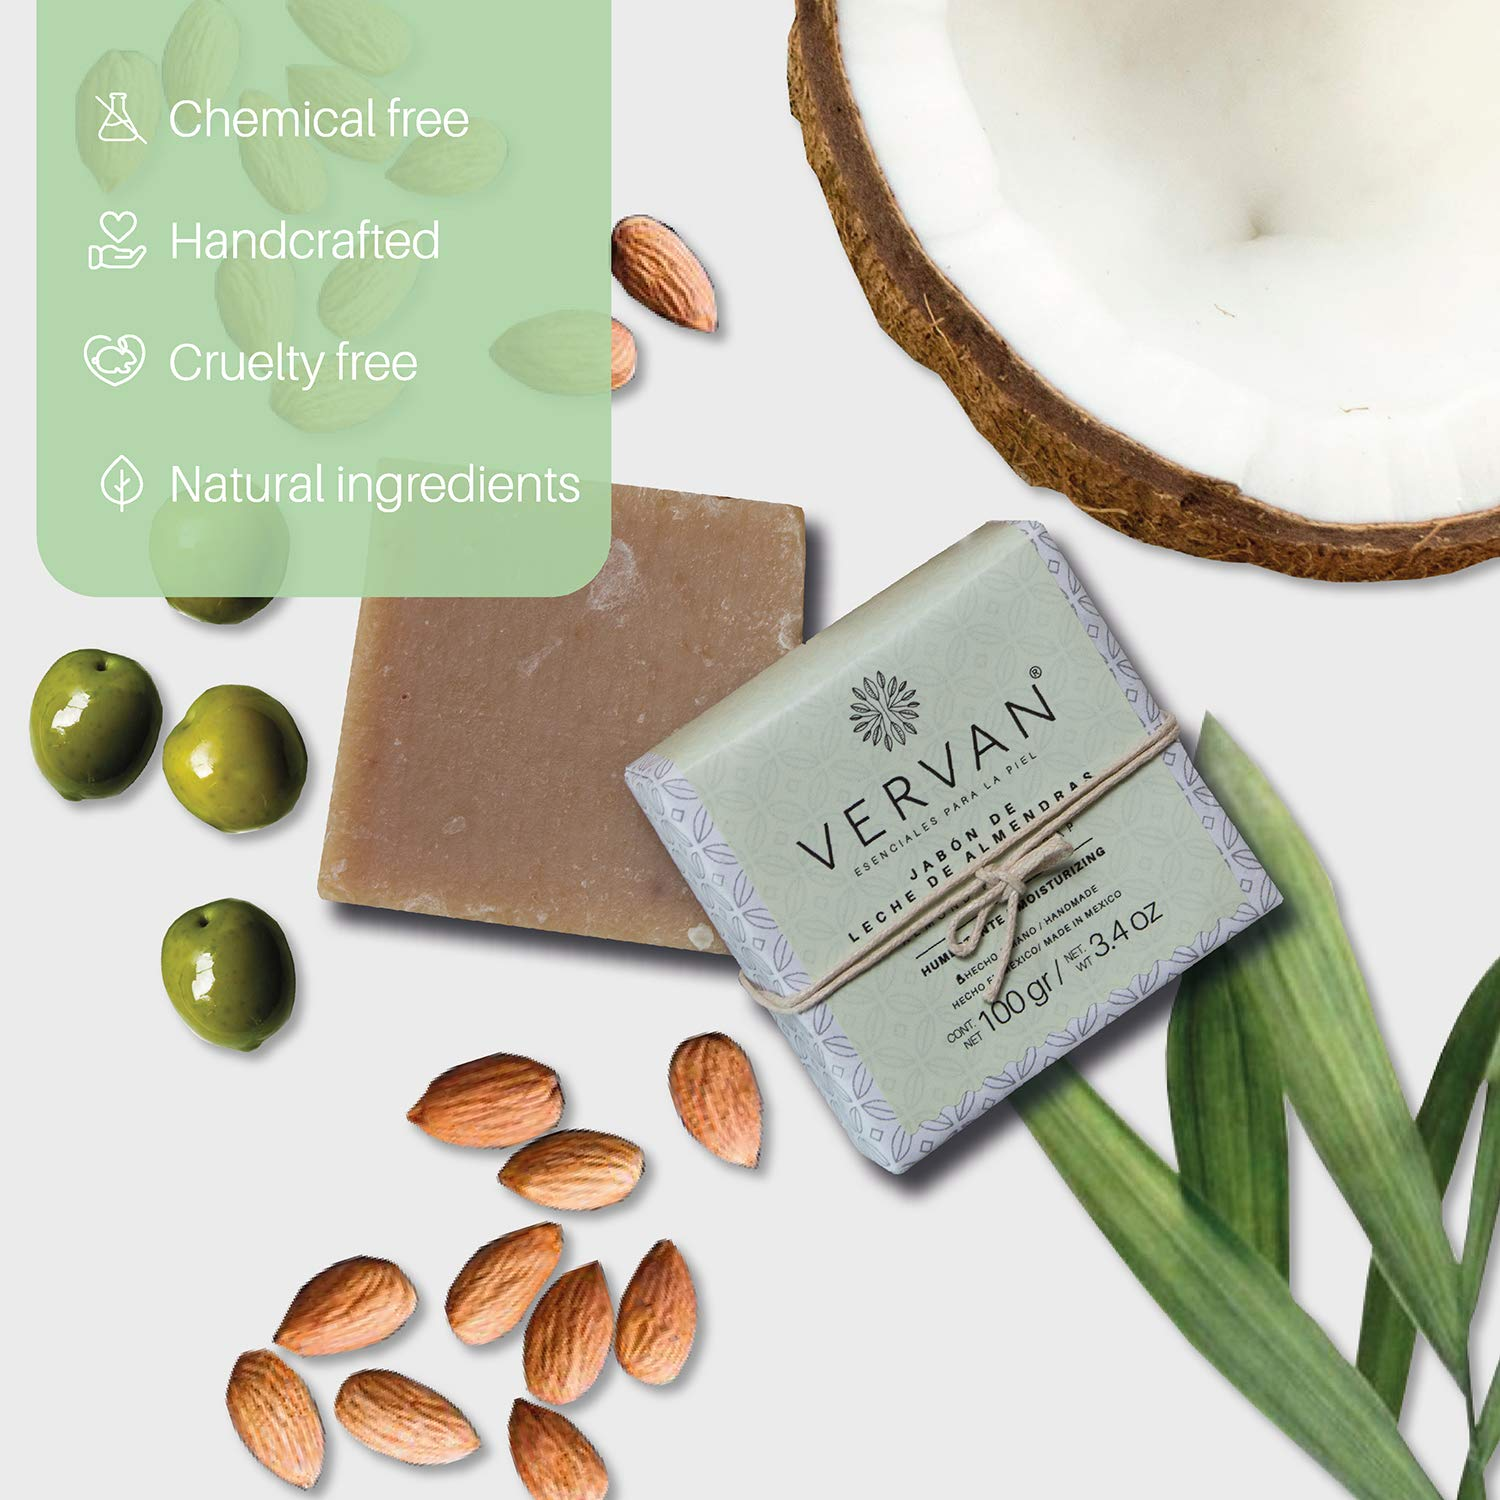 Vervan Almond Milk Anti-Dry Skin Natural Handmade Bar Soap, Cold Process Soap, Scented Soap Bar, Prevents Dehydration, 41% Olive Oil, 3.4 Oz